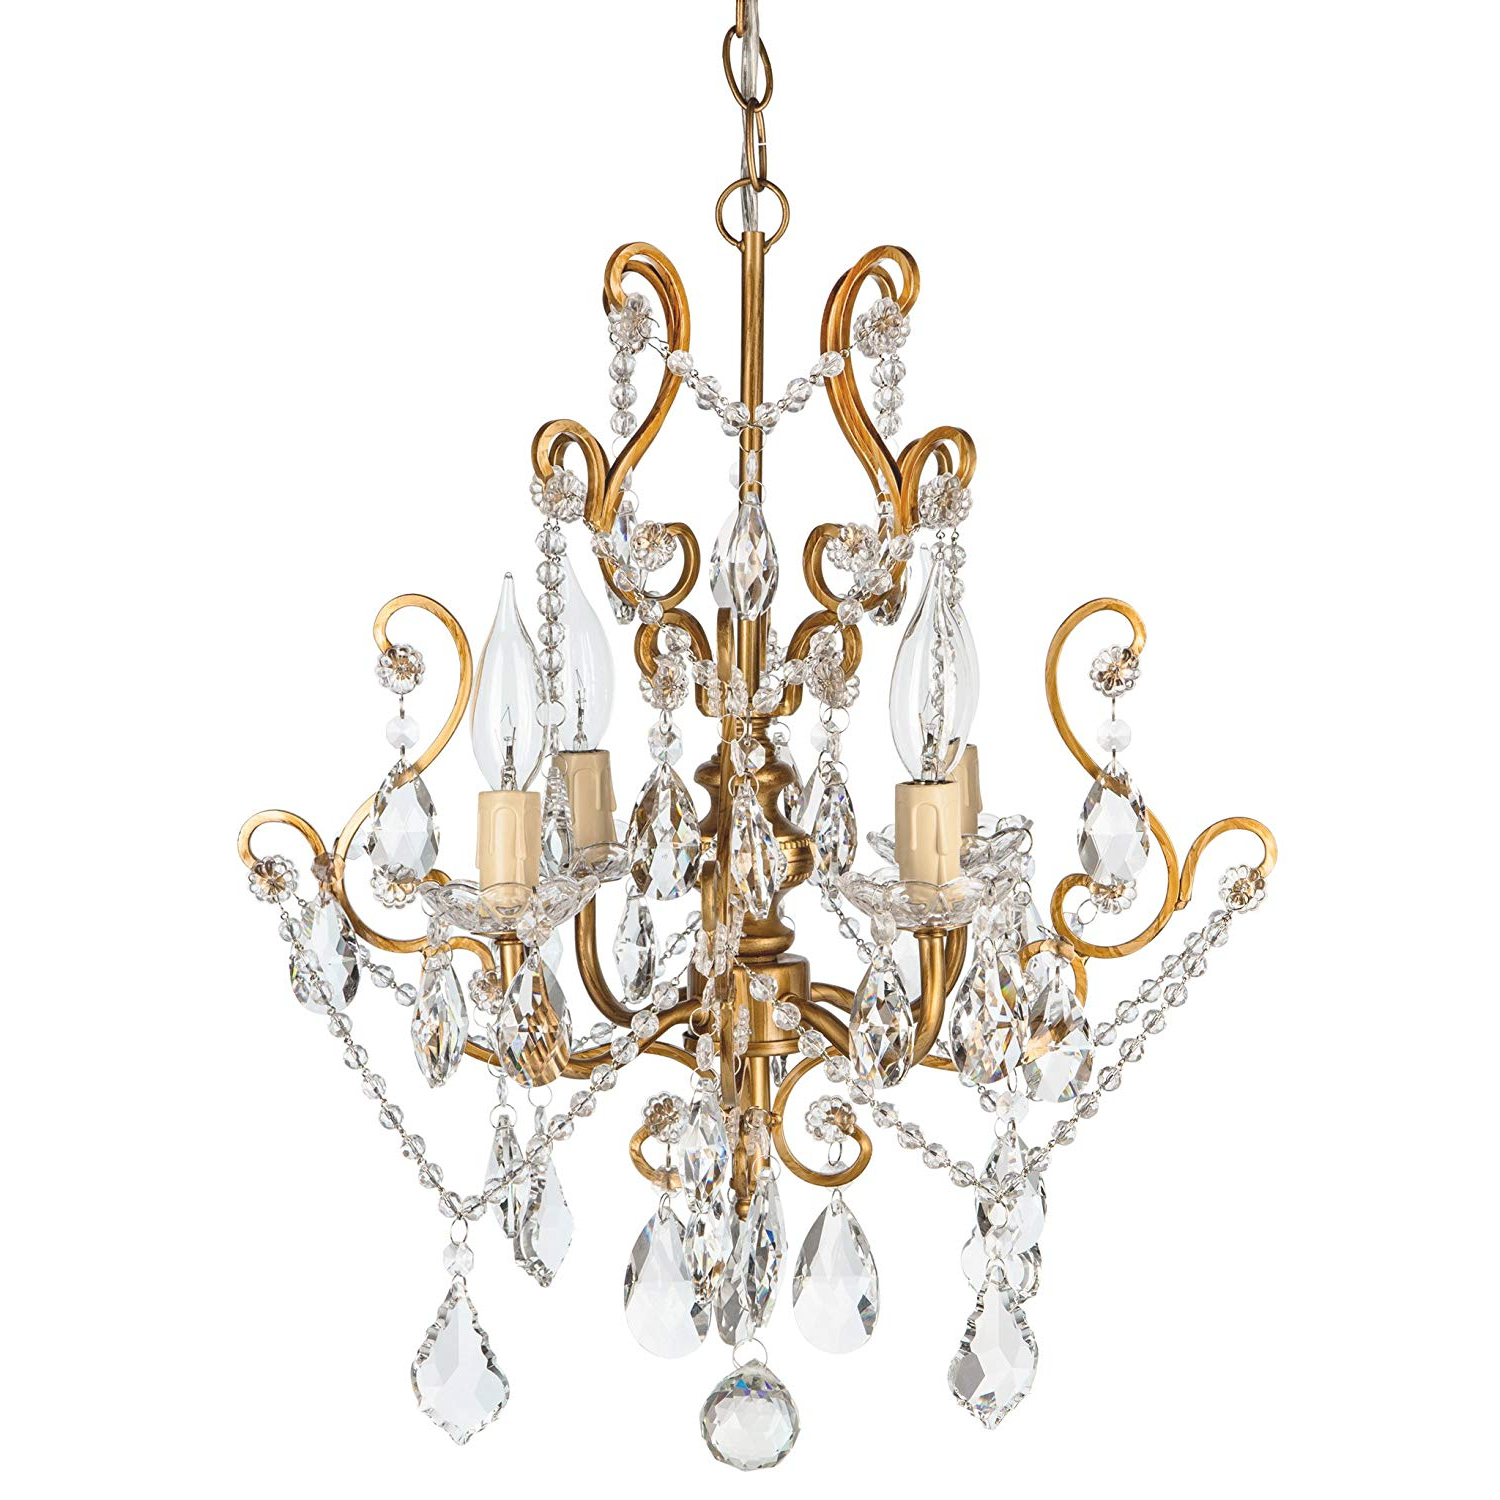 Emaria 4 Light Unique / Statement Chandeliers Within Well Liked Amalfi Decor 4 Light Led Crystal Beaded Chandelier, Mini Wrought Iron K9  Glass Pendant Light Fixture Vintage Nursery Kids Room Dimmable Plug In (Gallery 20 of 25)